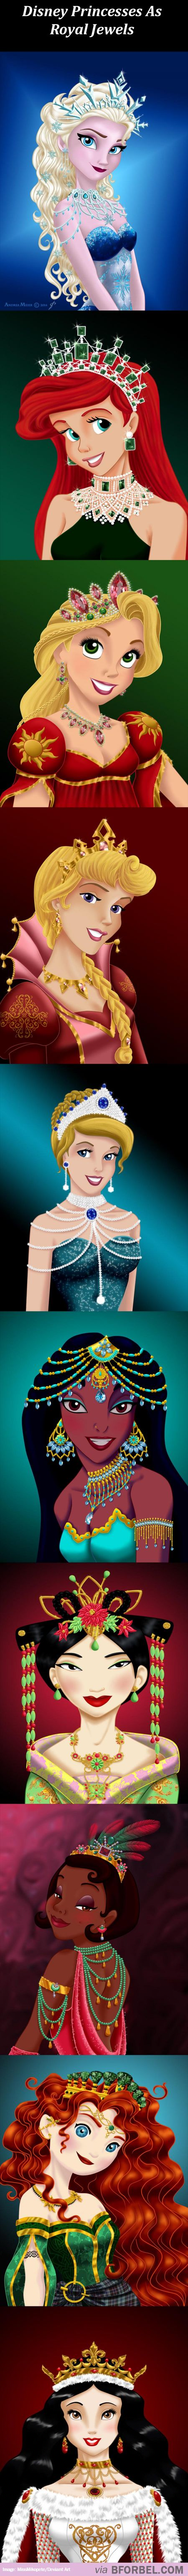 10 Disney Princesses With Their Royal Jewels I don't like Mulan though